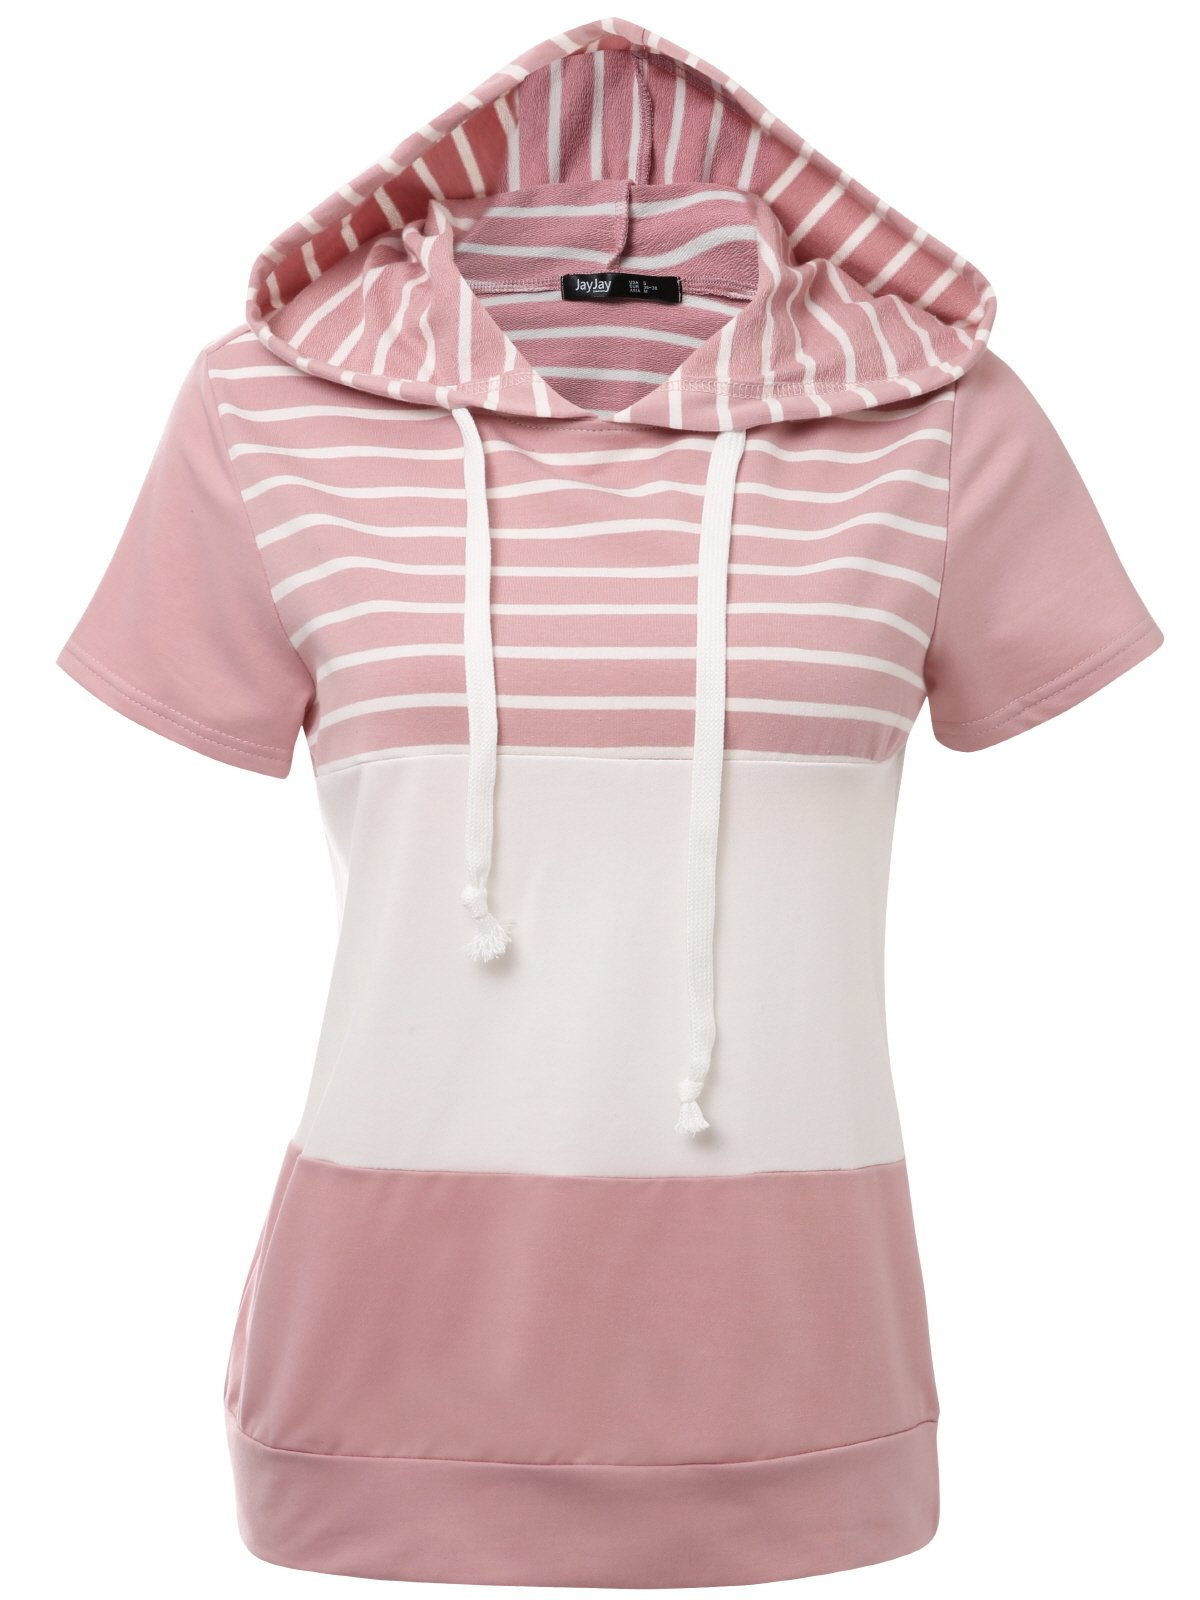 JayJay Women Casual Athleisure Short Sleeve Striped Contrast Color Pullover Hoodie Sweater Shirt,INDIPINK,2XL